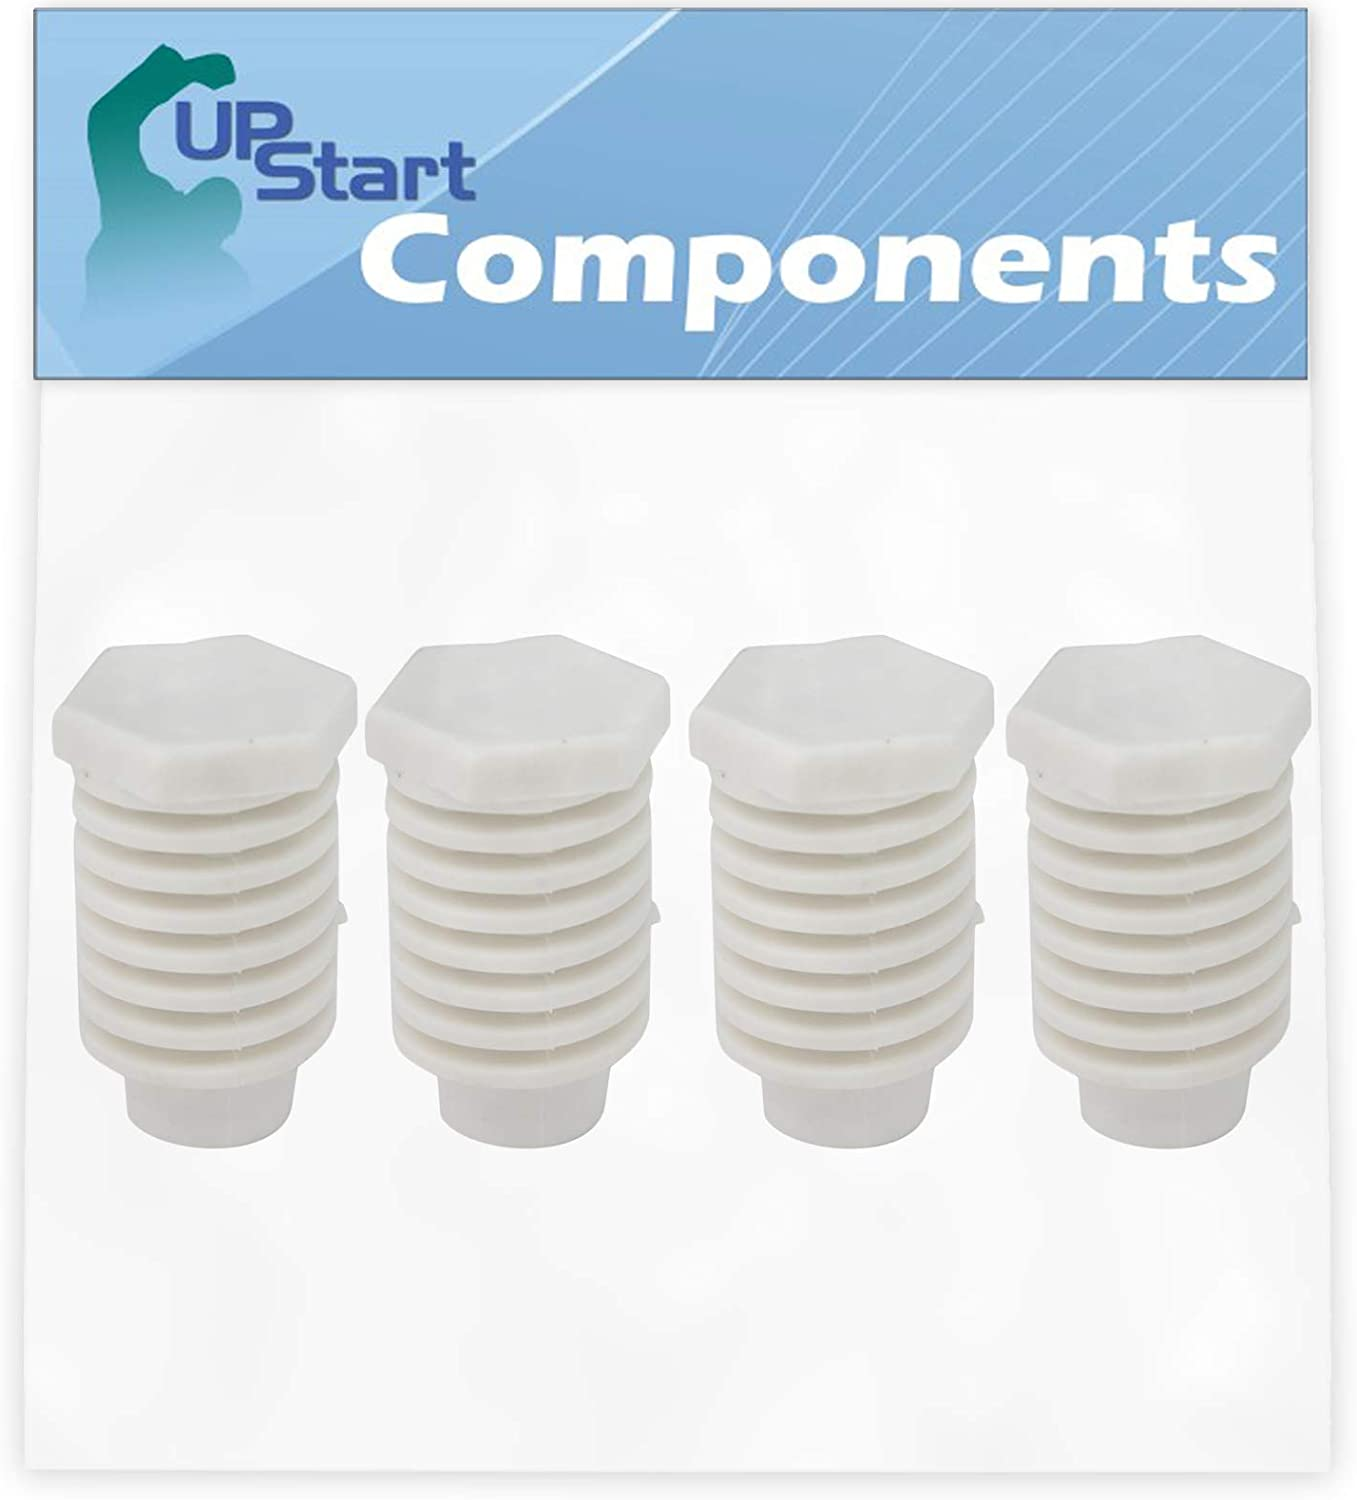 4-Pack 49621 Leveling Foot Replacement for Whirlpool WED5800BW0 Dryer - Compatible with 49621 Dryer Leveling Leg Foot - UpStart Components Brand